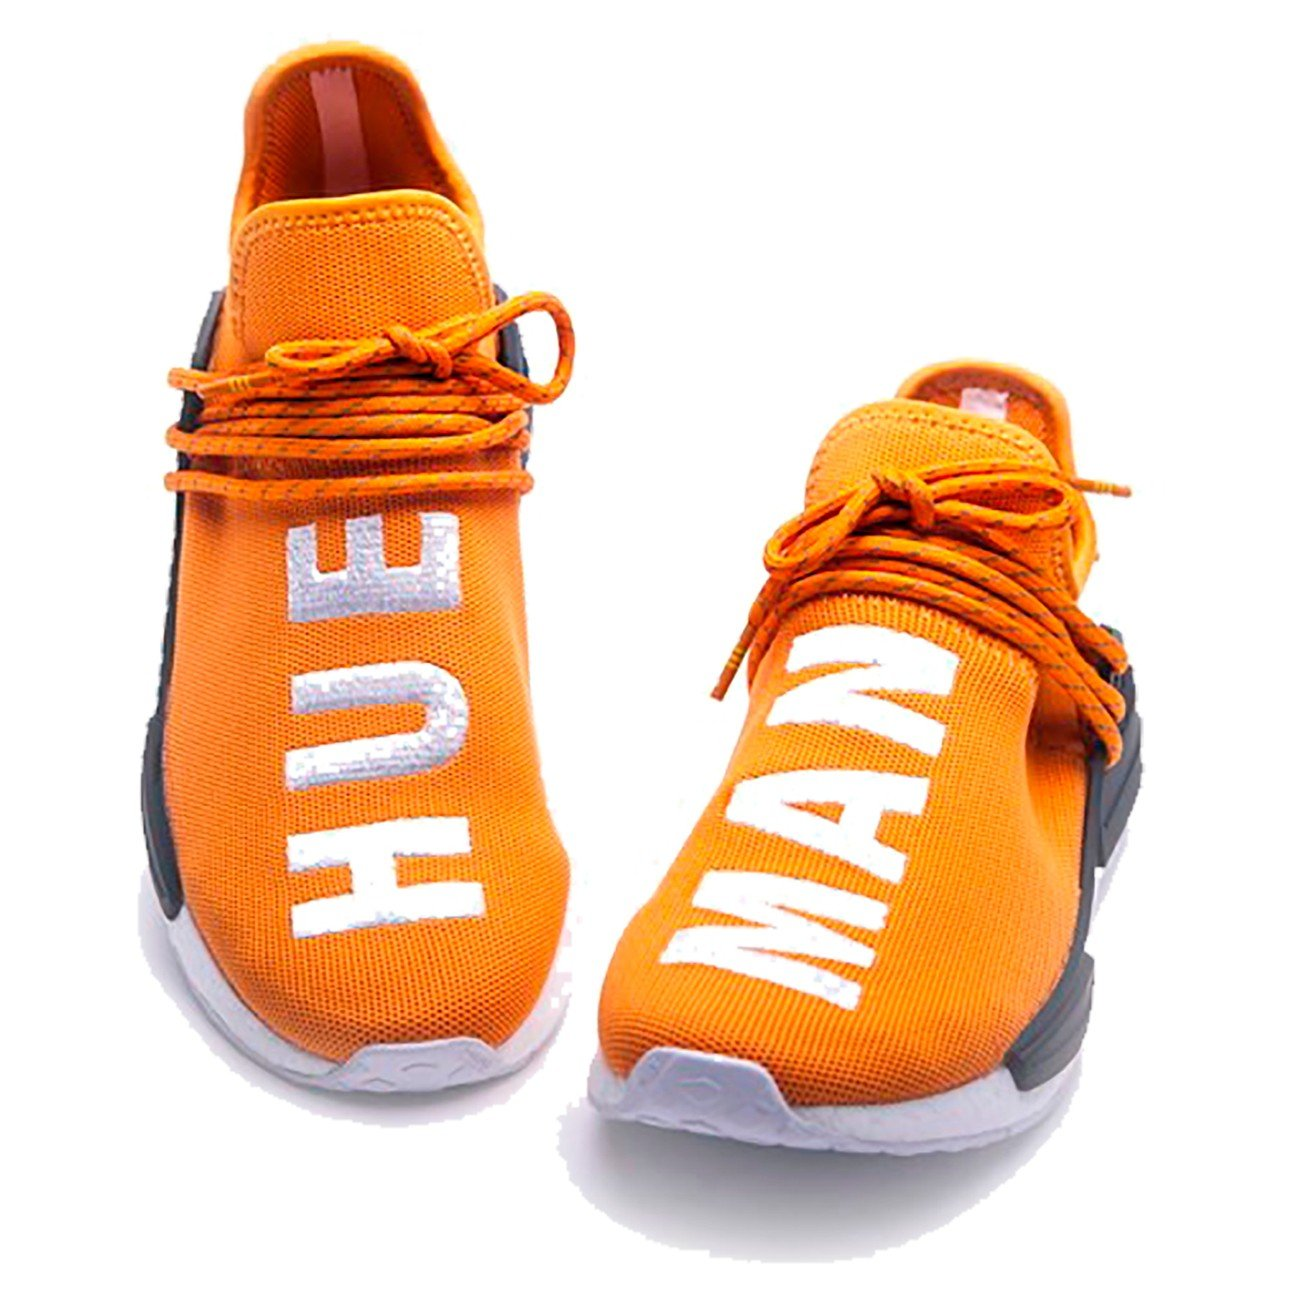 low priced ddc22 d8a76 Human Race Sneaker Real Boost Casual Breathable Lightweight ...